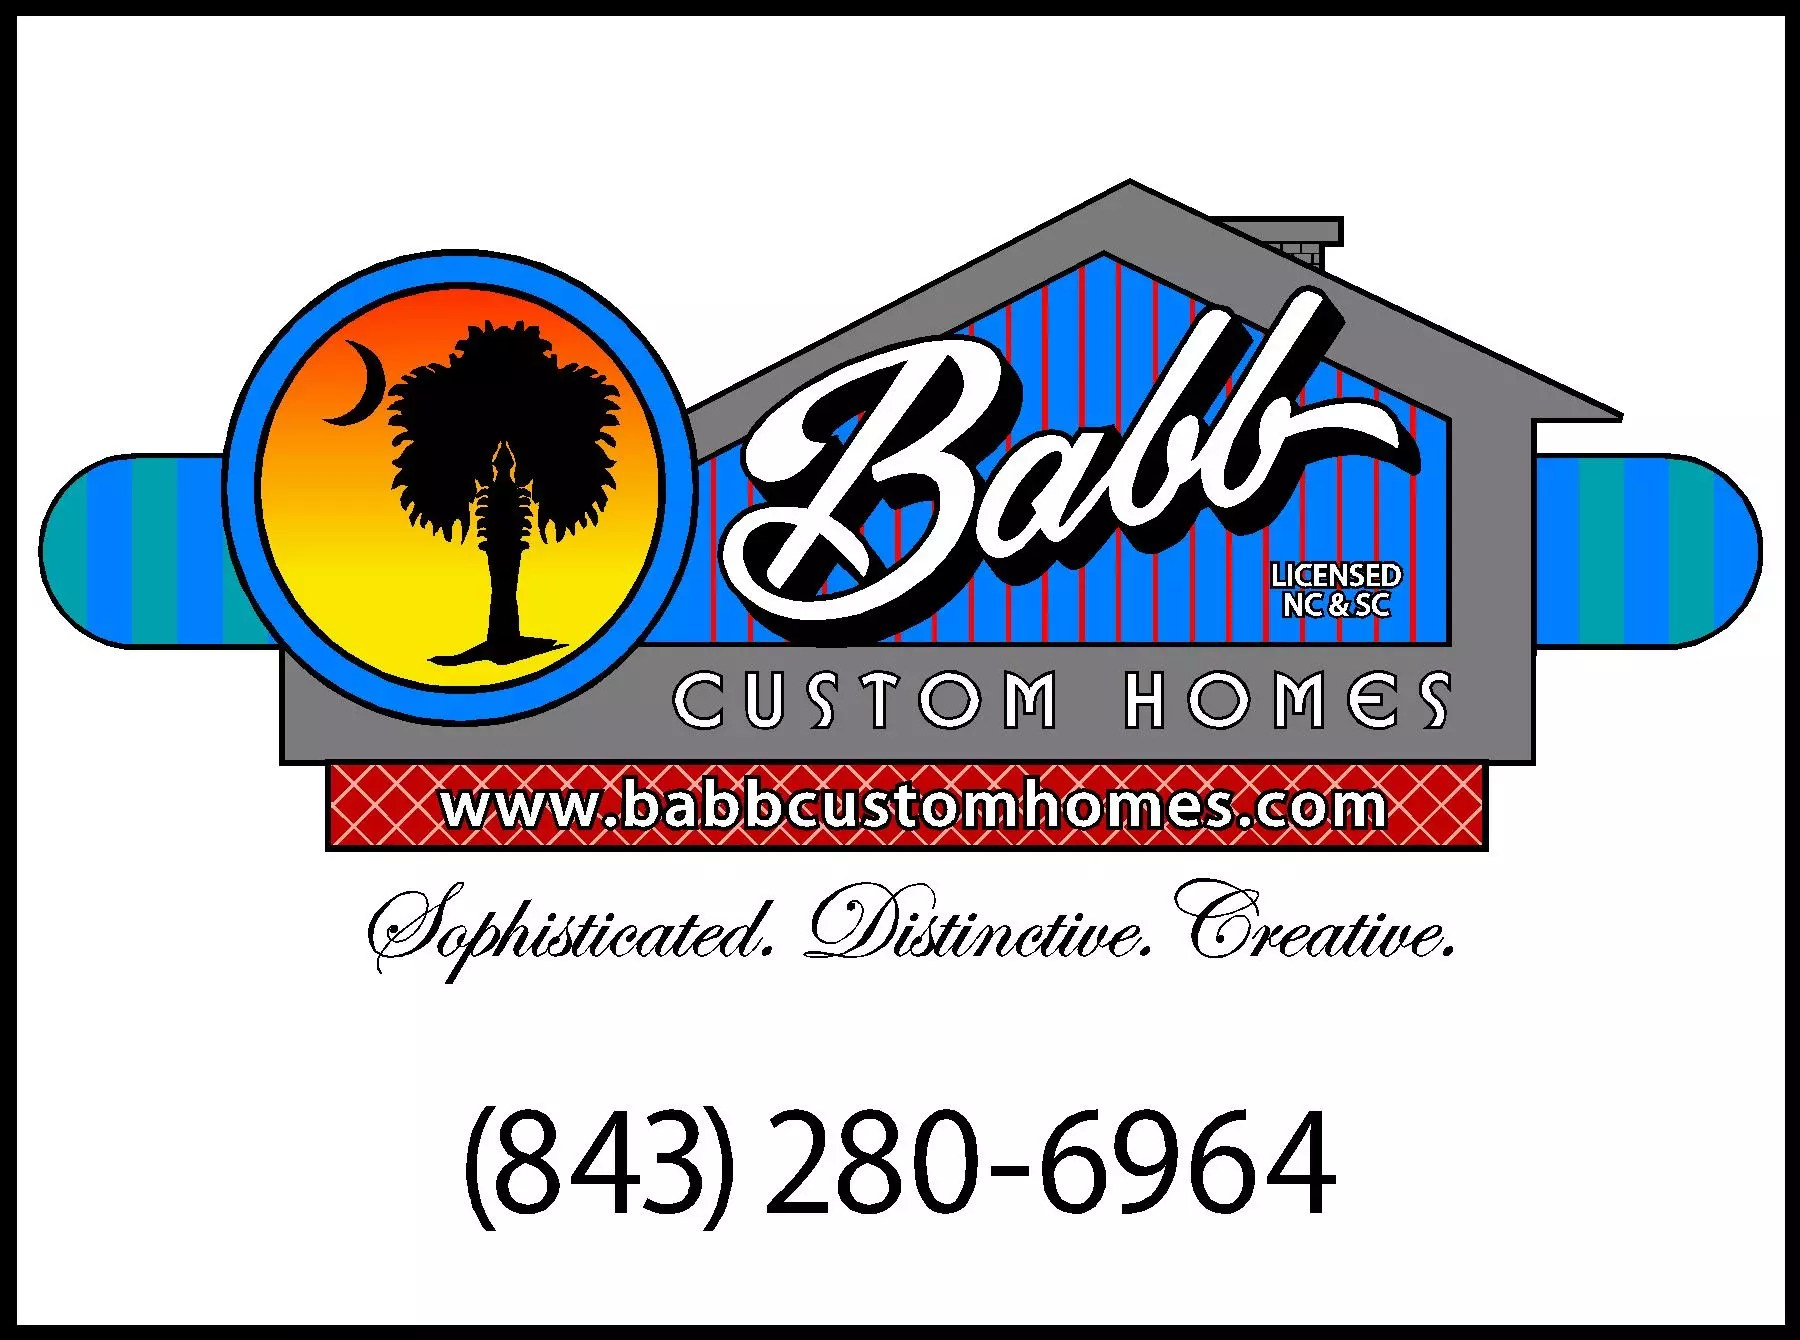 Babb Custom Homes